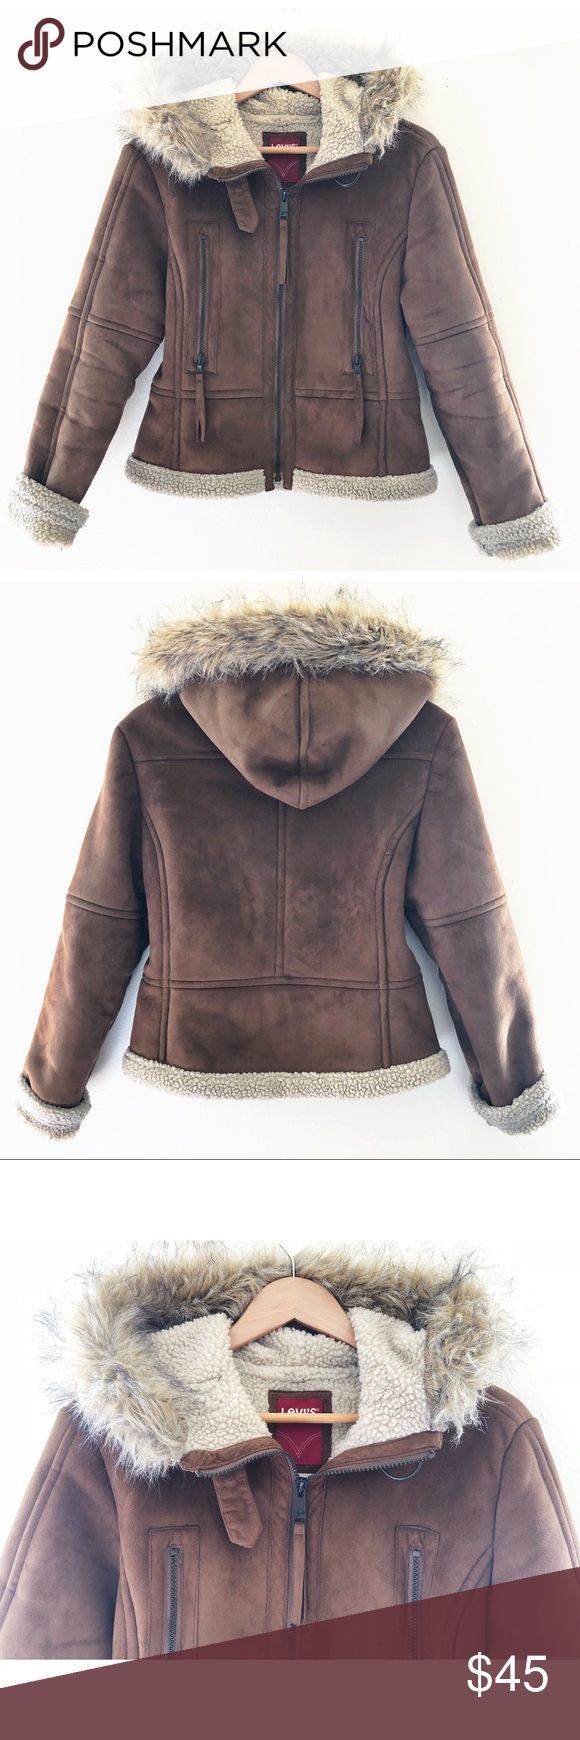 LEVI'S suede jacket Women's Levi's suede jacket. Sherpa lining and fur trim hood. Zipper closure with 2 a zip up side pockets. In great used condition. Levi's Jackets & Coats